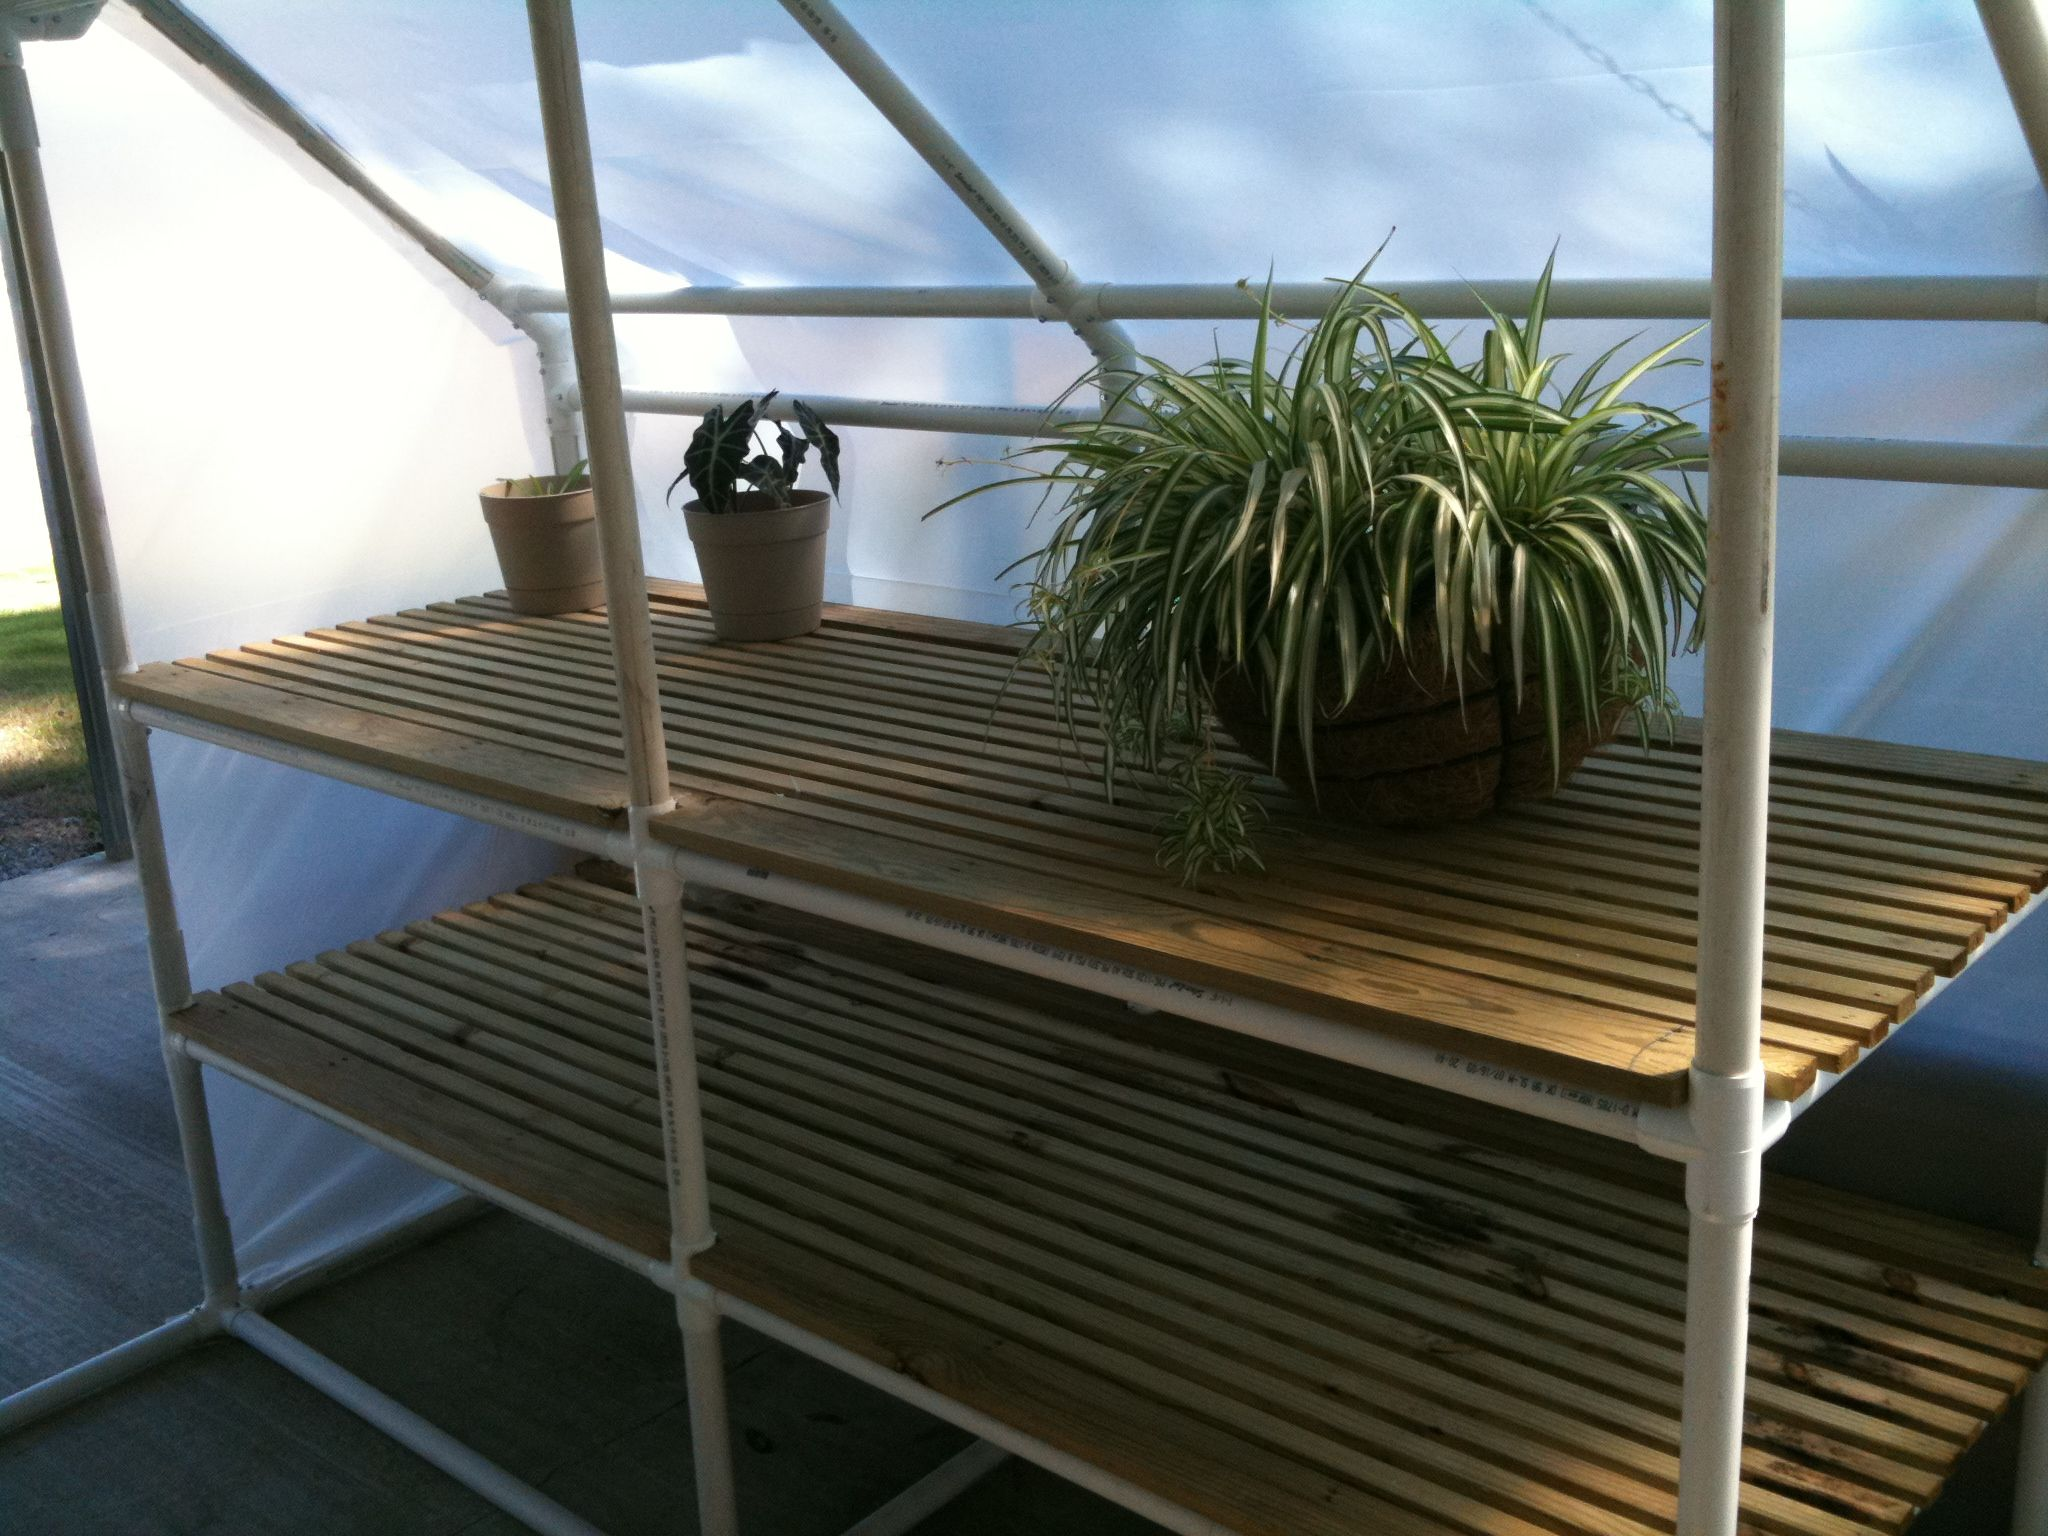 Build your own PVC Greenhouse. Fast, affordable, easy, and ...